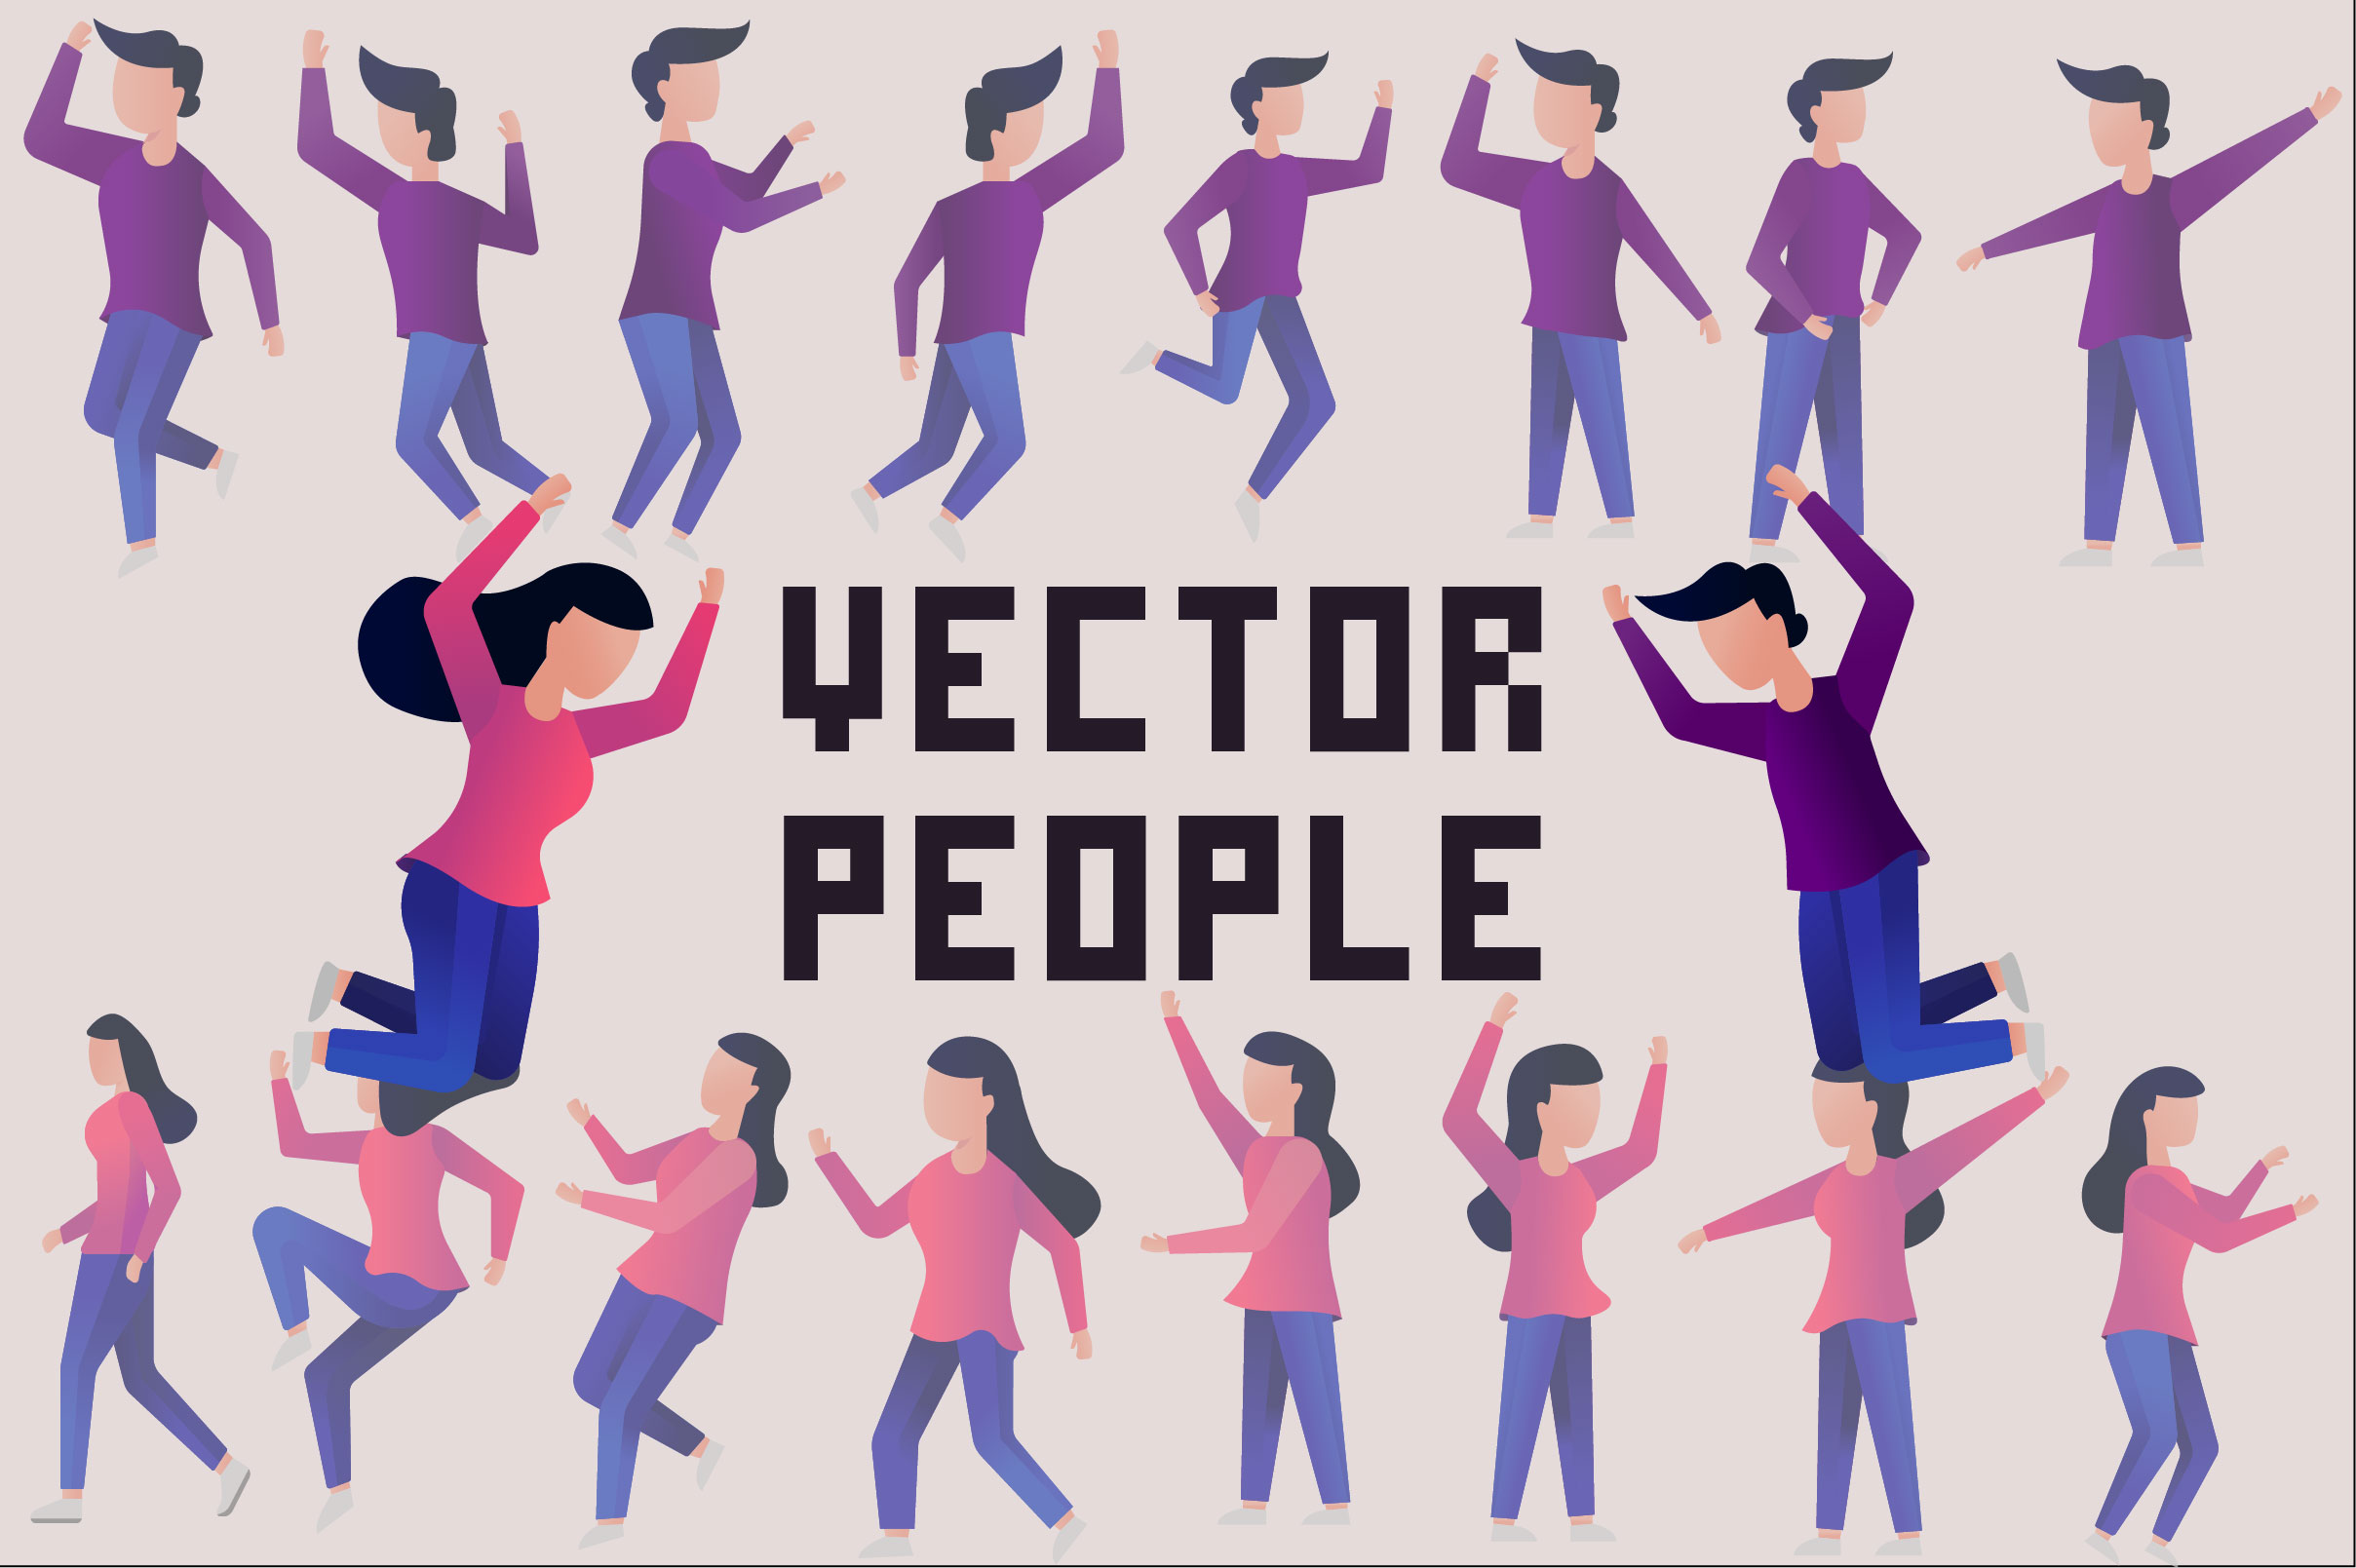 Download Free Vector People Graphic By Arausidp Creative Fabrica for Cricut Explore, Silhouette and other cutting machines.